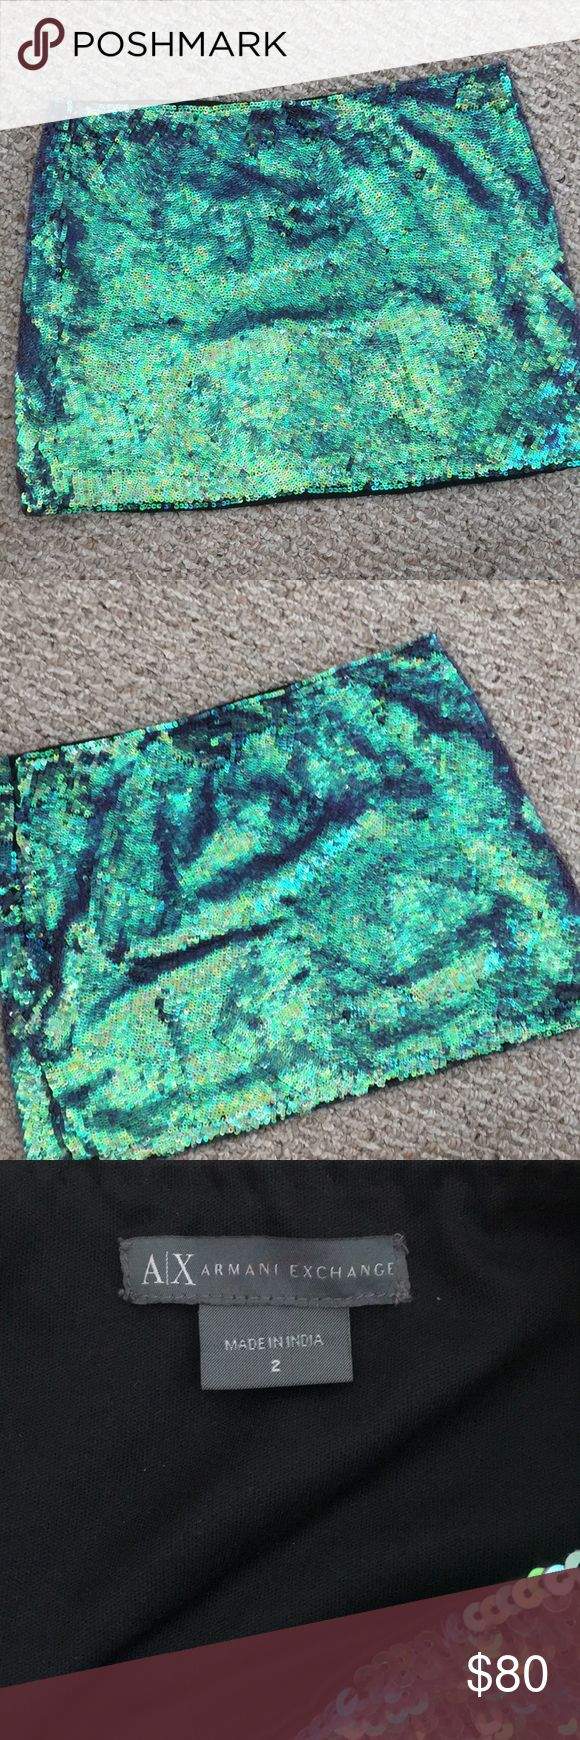 Armani Exchange Sequin Miniskirt Adorable blue/green mini skirt with sequins all over. Worn once. Size 2. Perfect condition. A/X Armani Exchange Skirts Mini